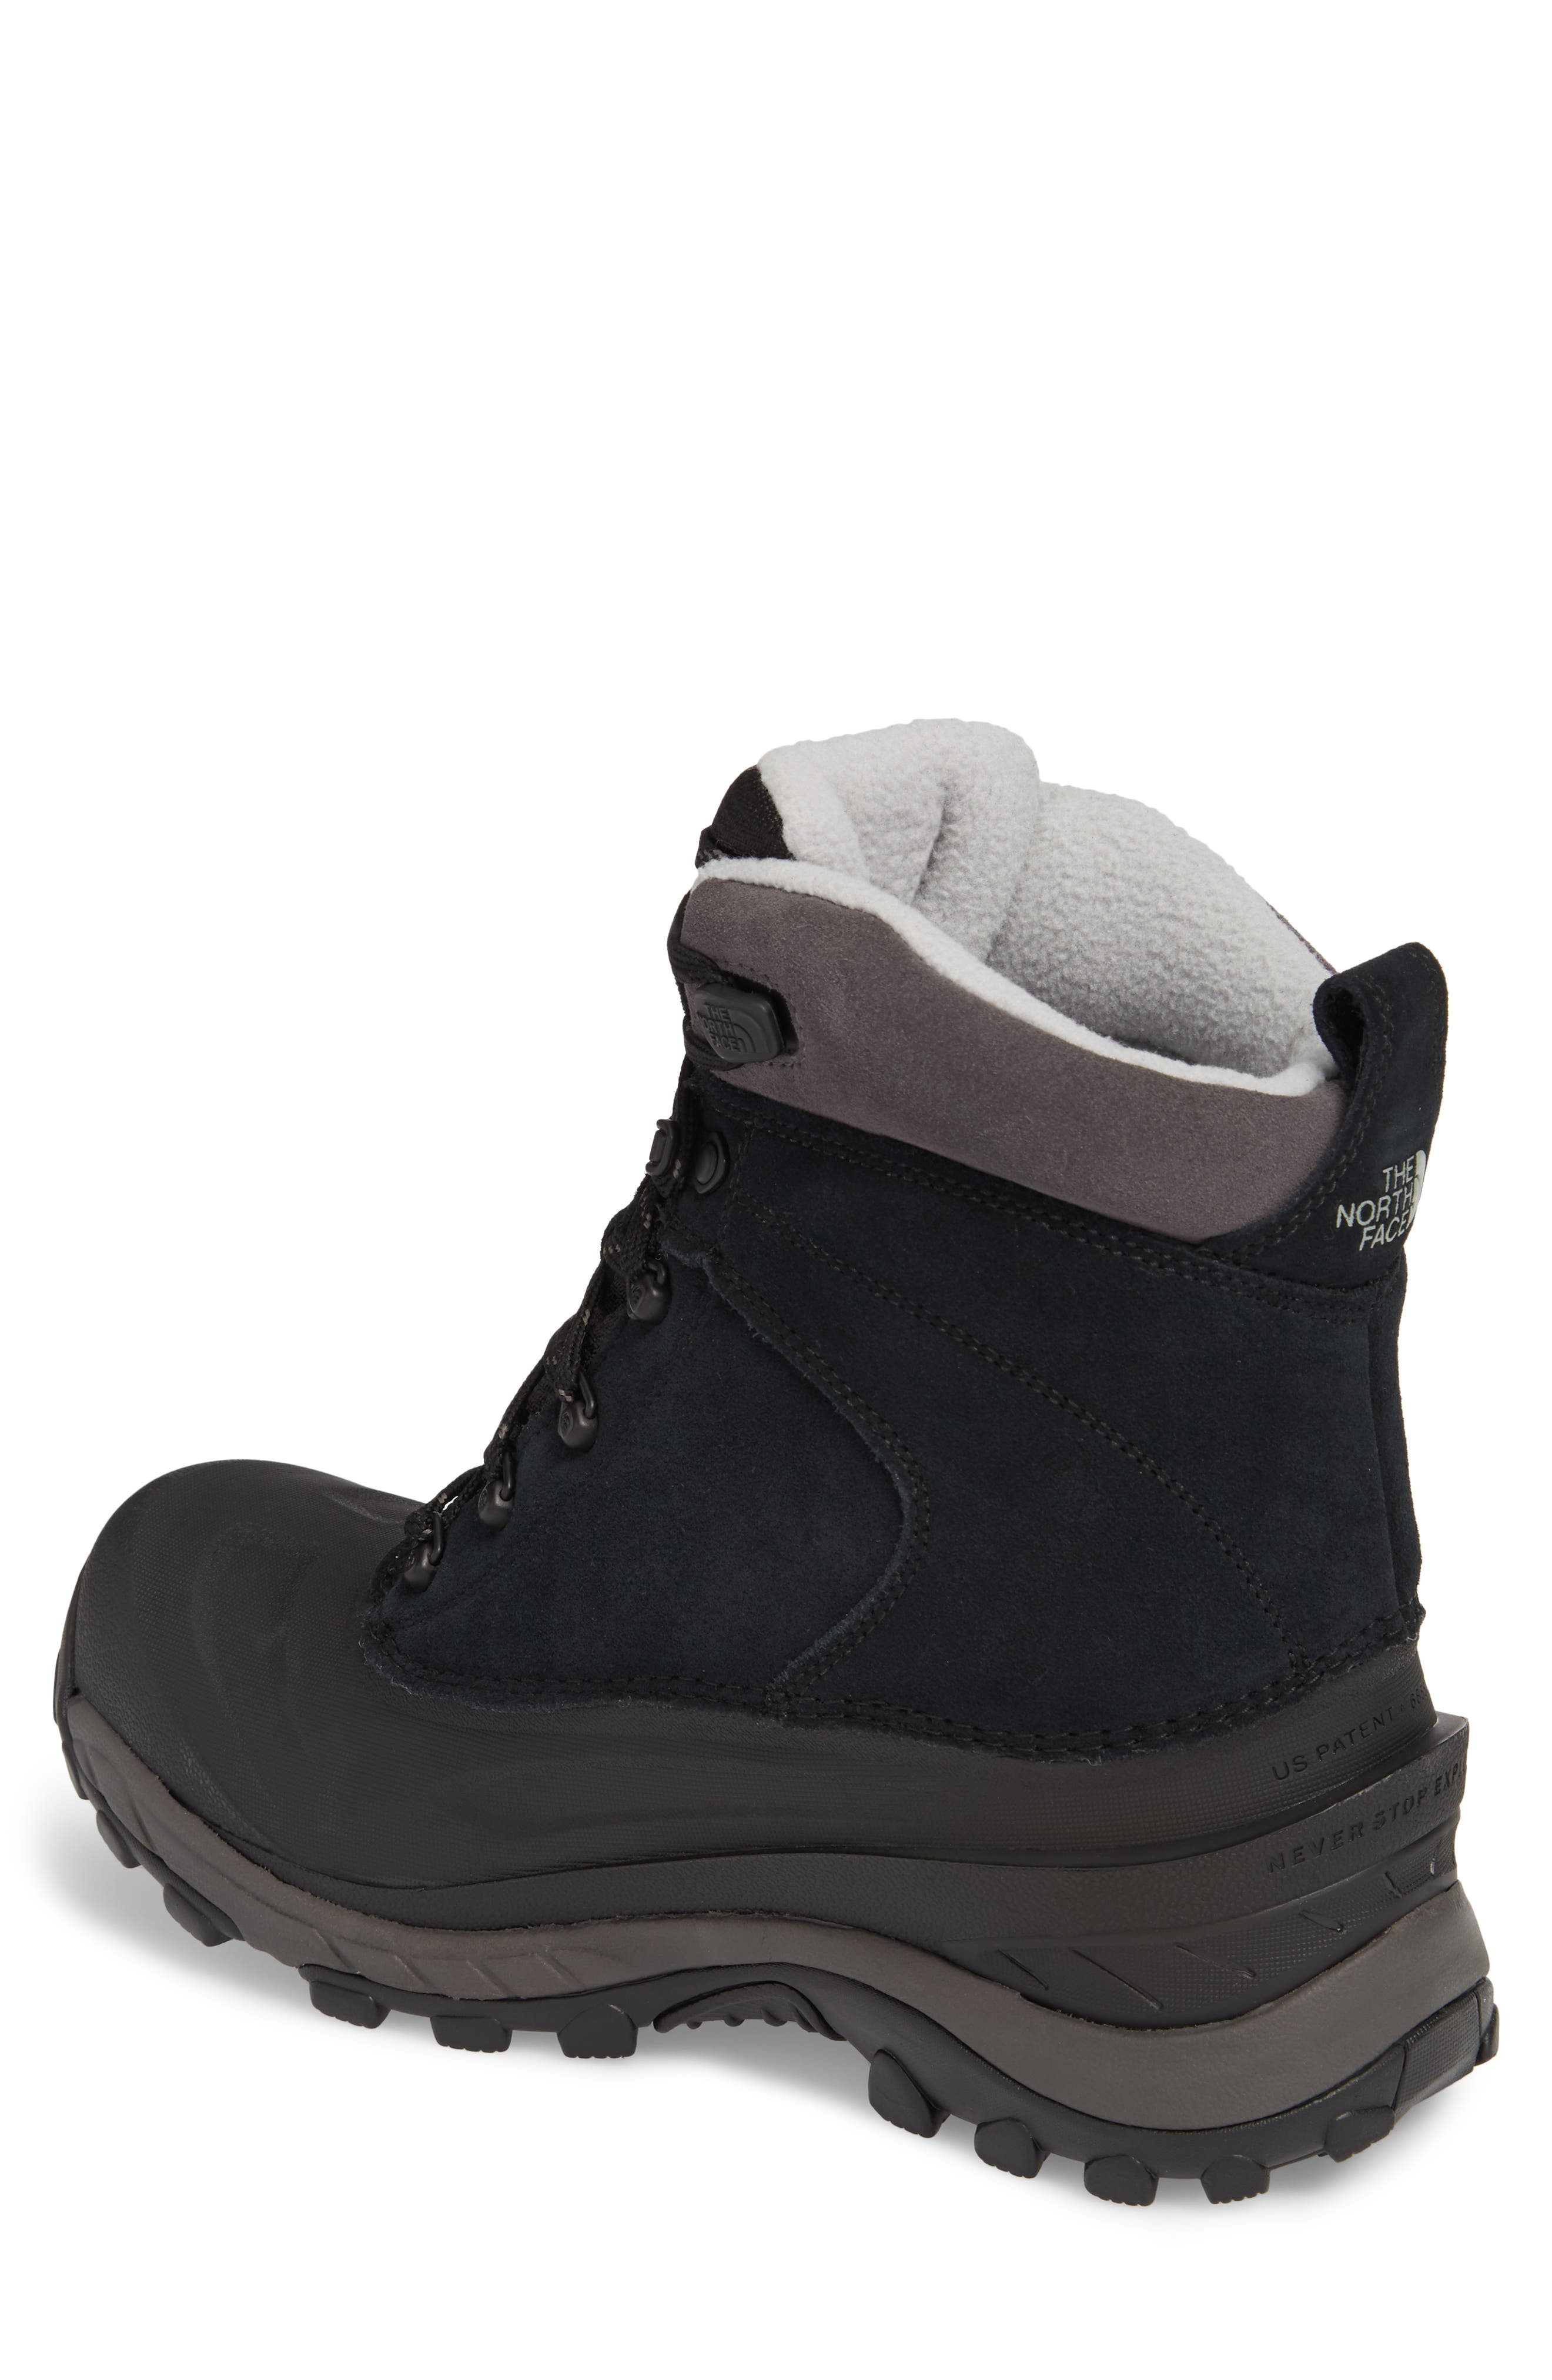 Chilkat III Waterproof Insulated Boot,                             Alternate thumbnail 2, color,                             TNF BLACK